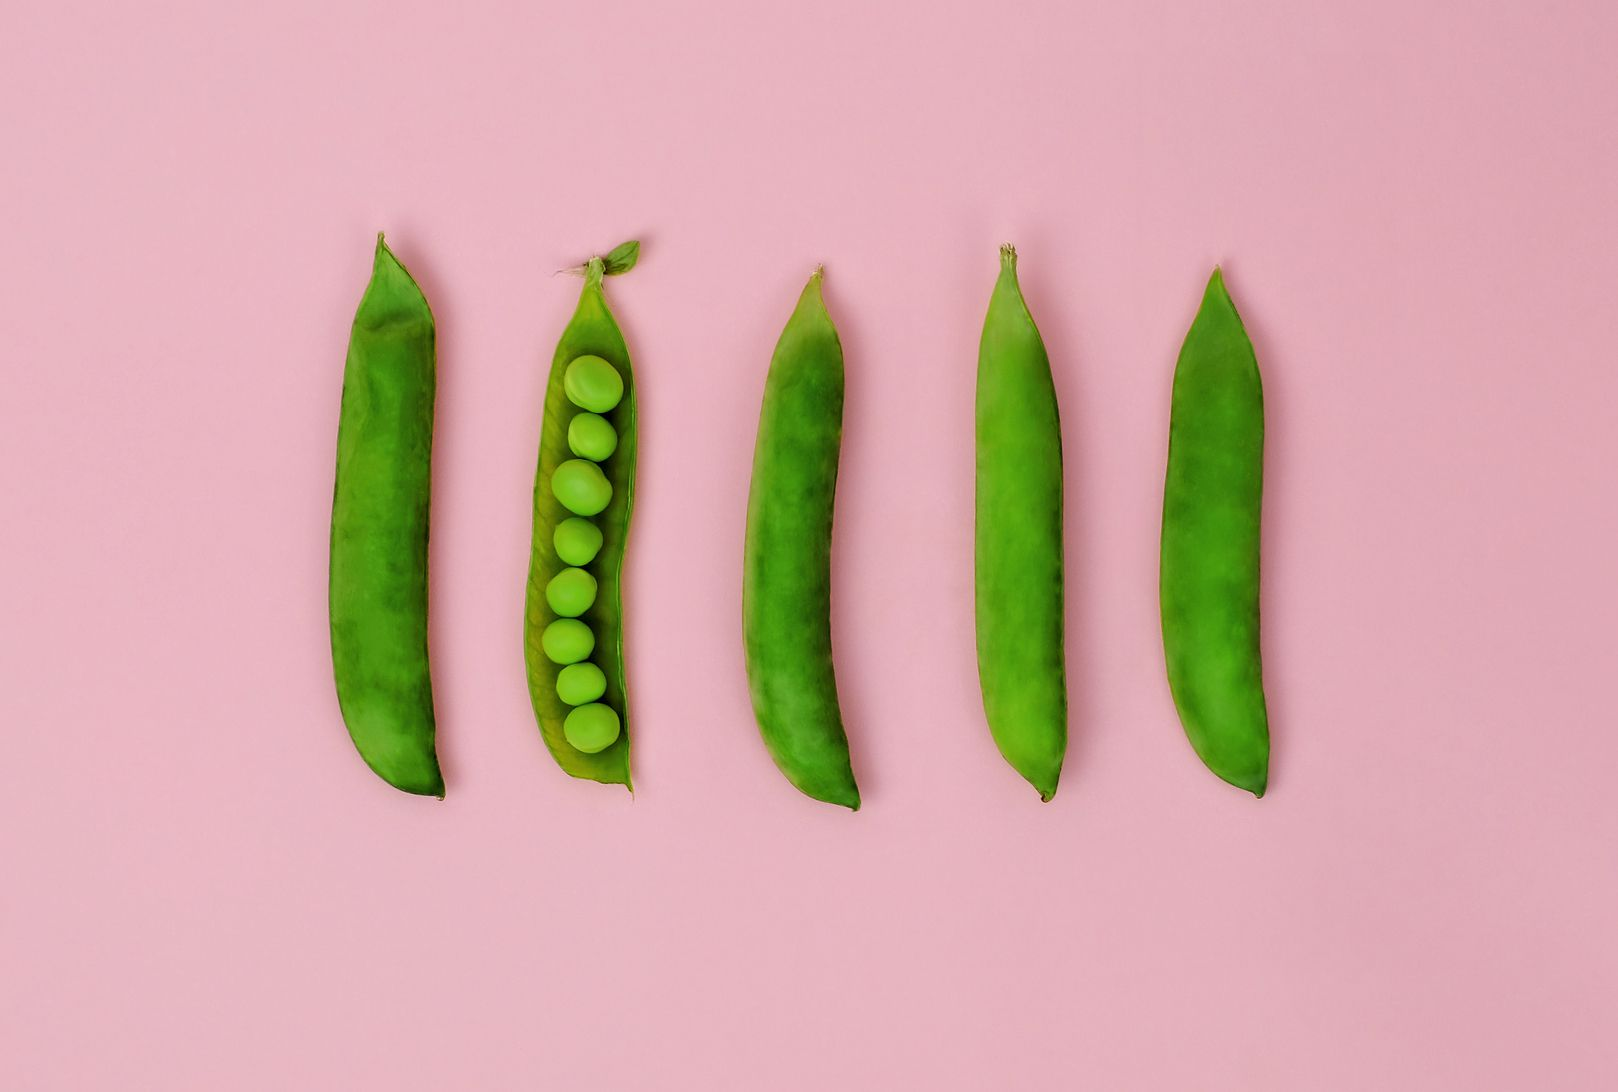 What Are Peas?